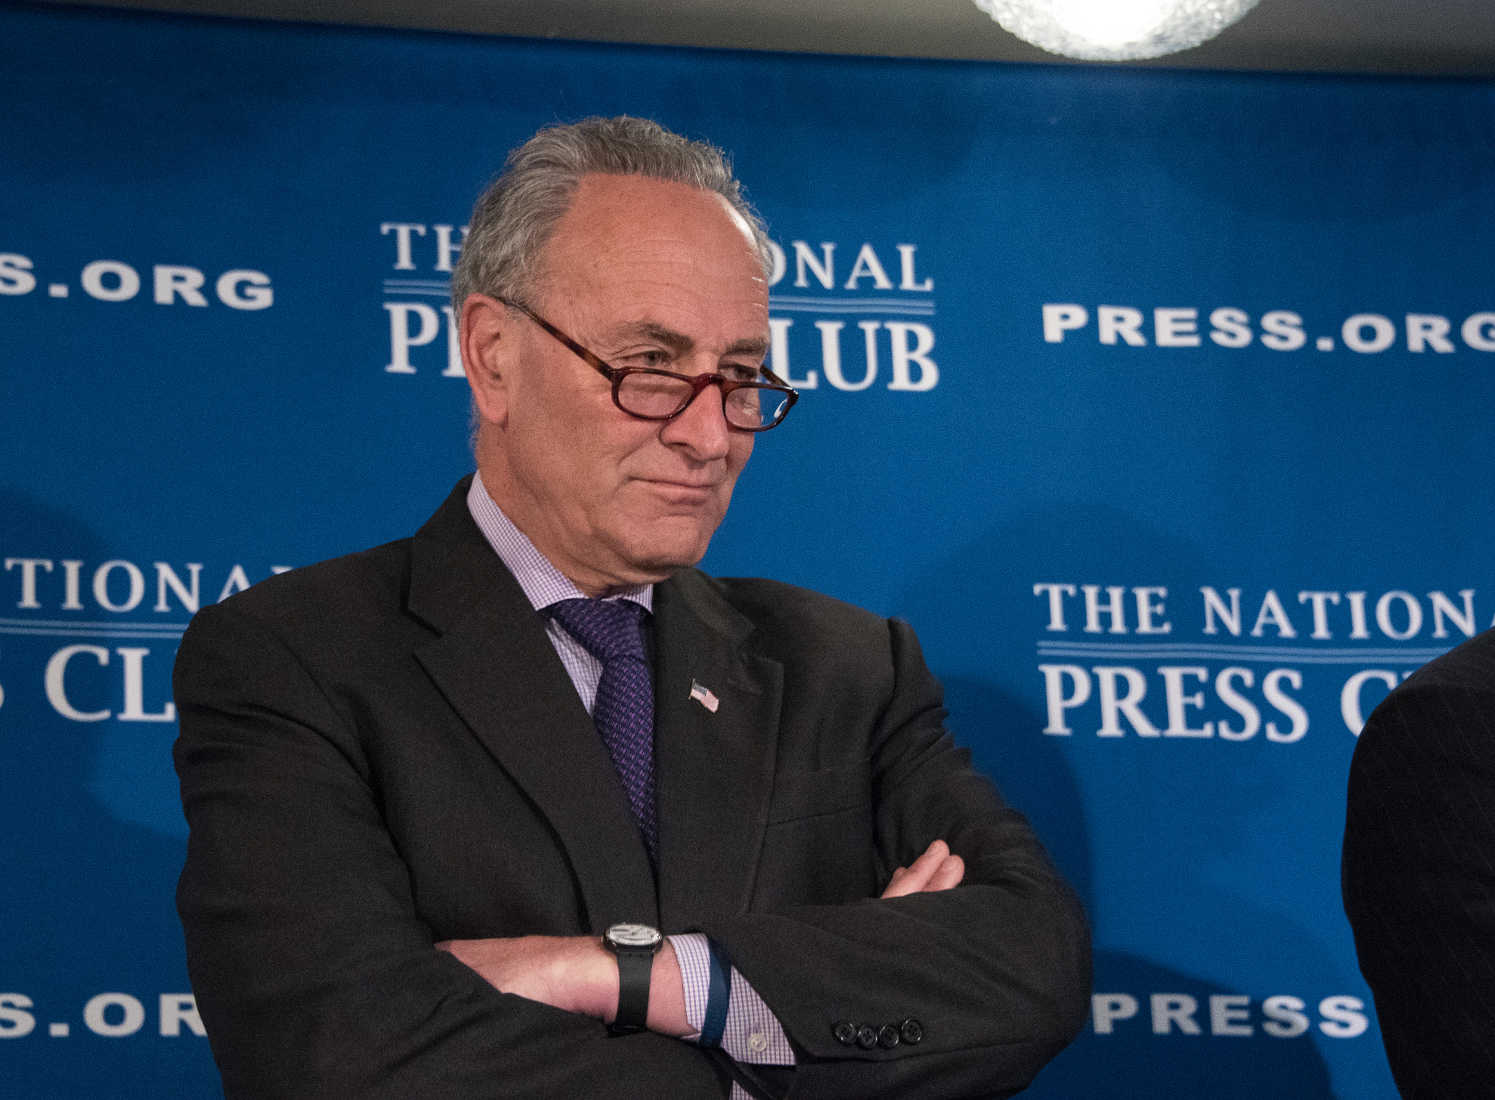 Gun Owners of America Files Red Flag Order against Schumer after Threatening Remarks